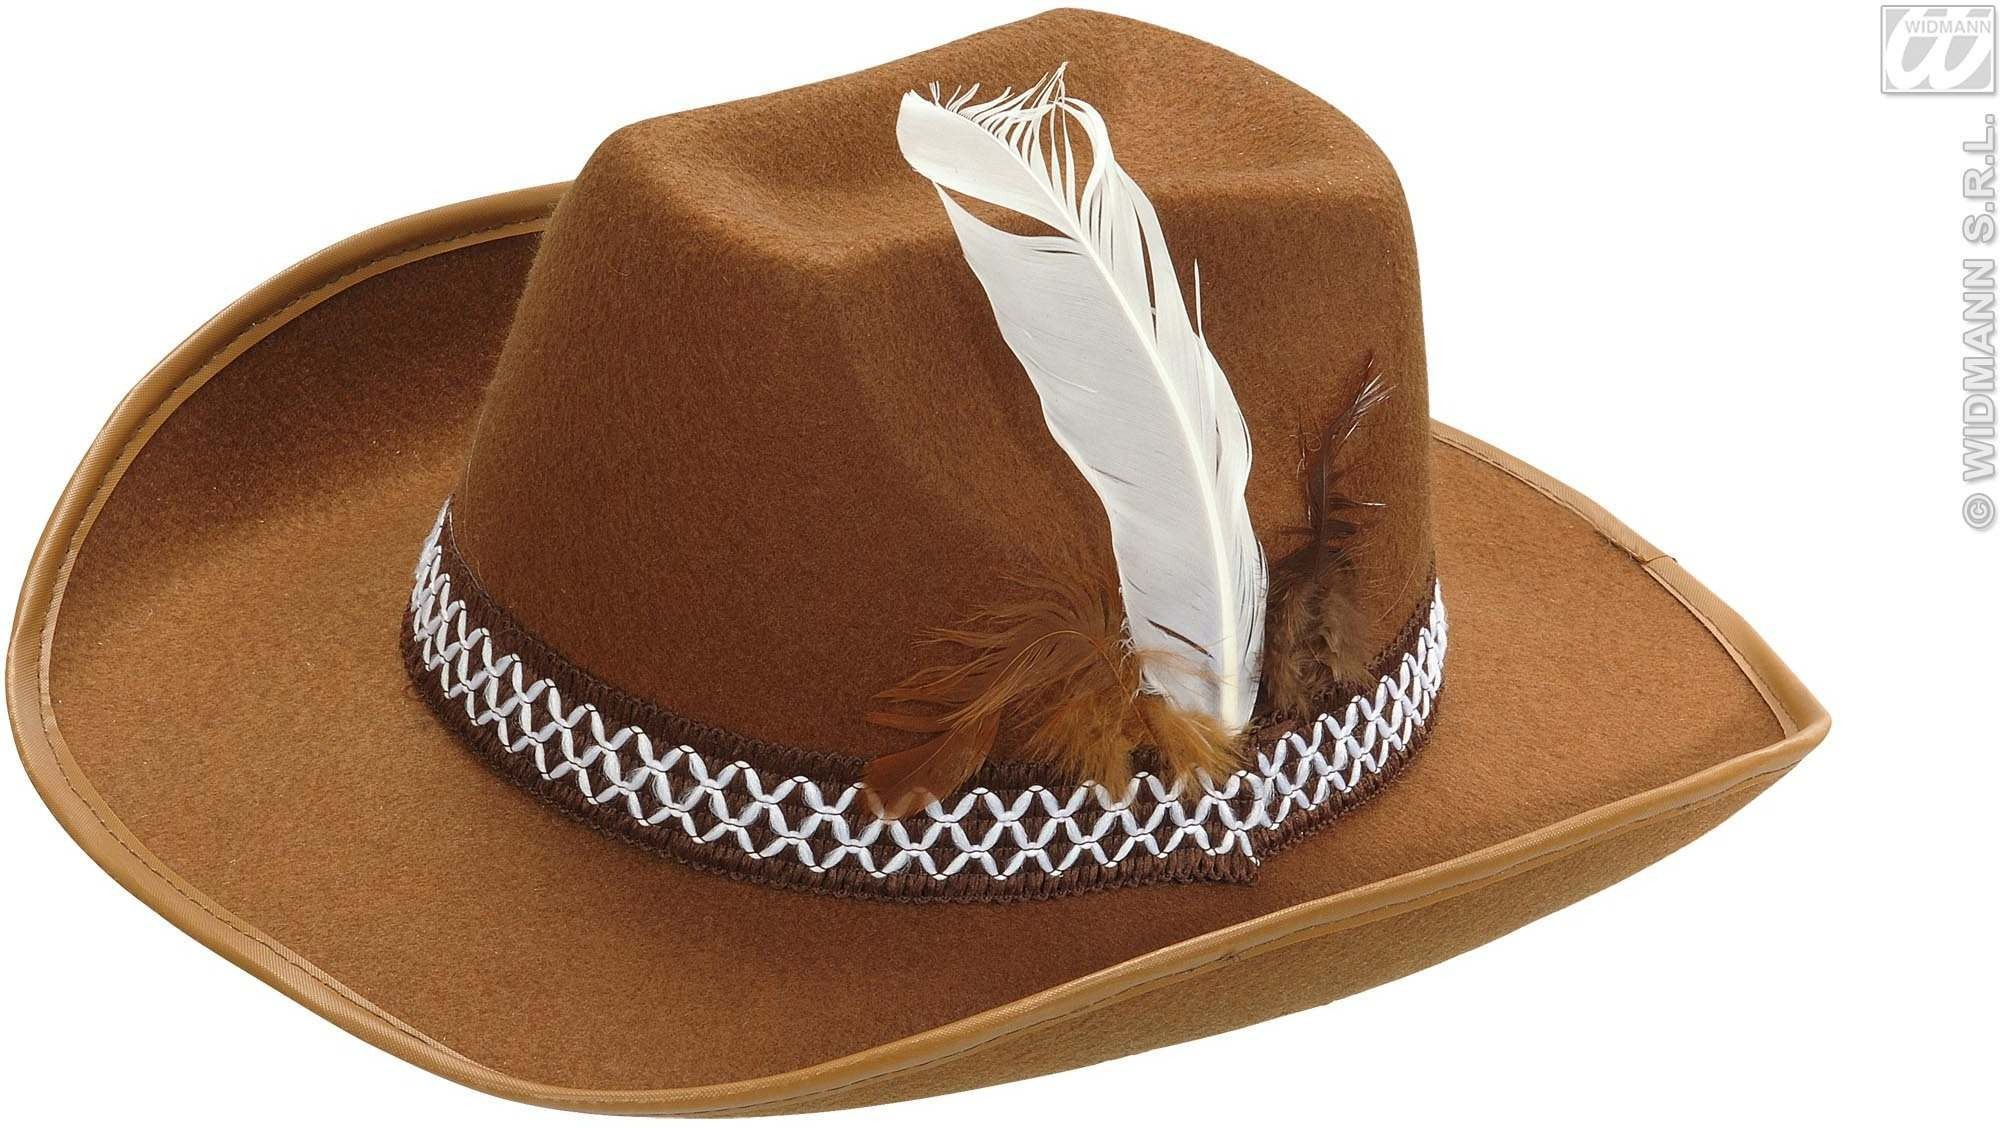 Sheriff Hat W/Feathers Adult Felt - Brown - Fancy Dress